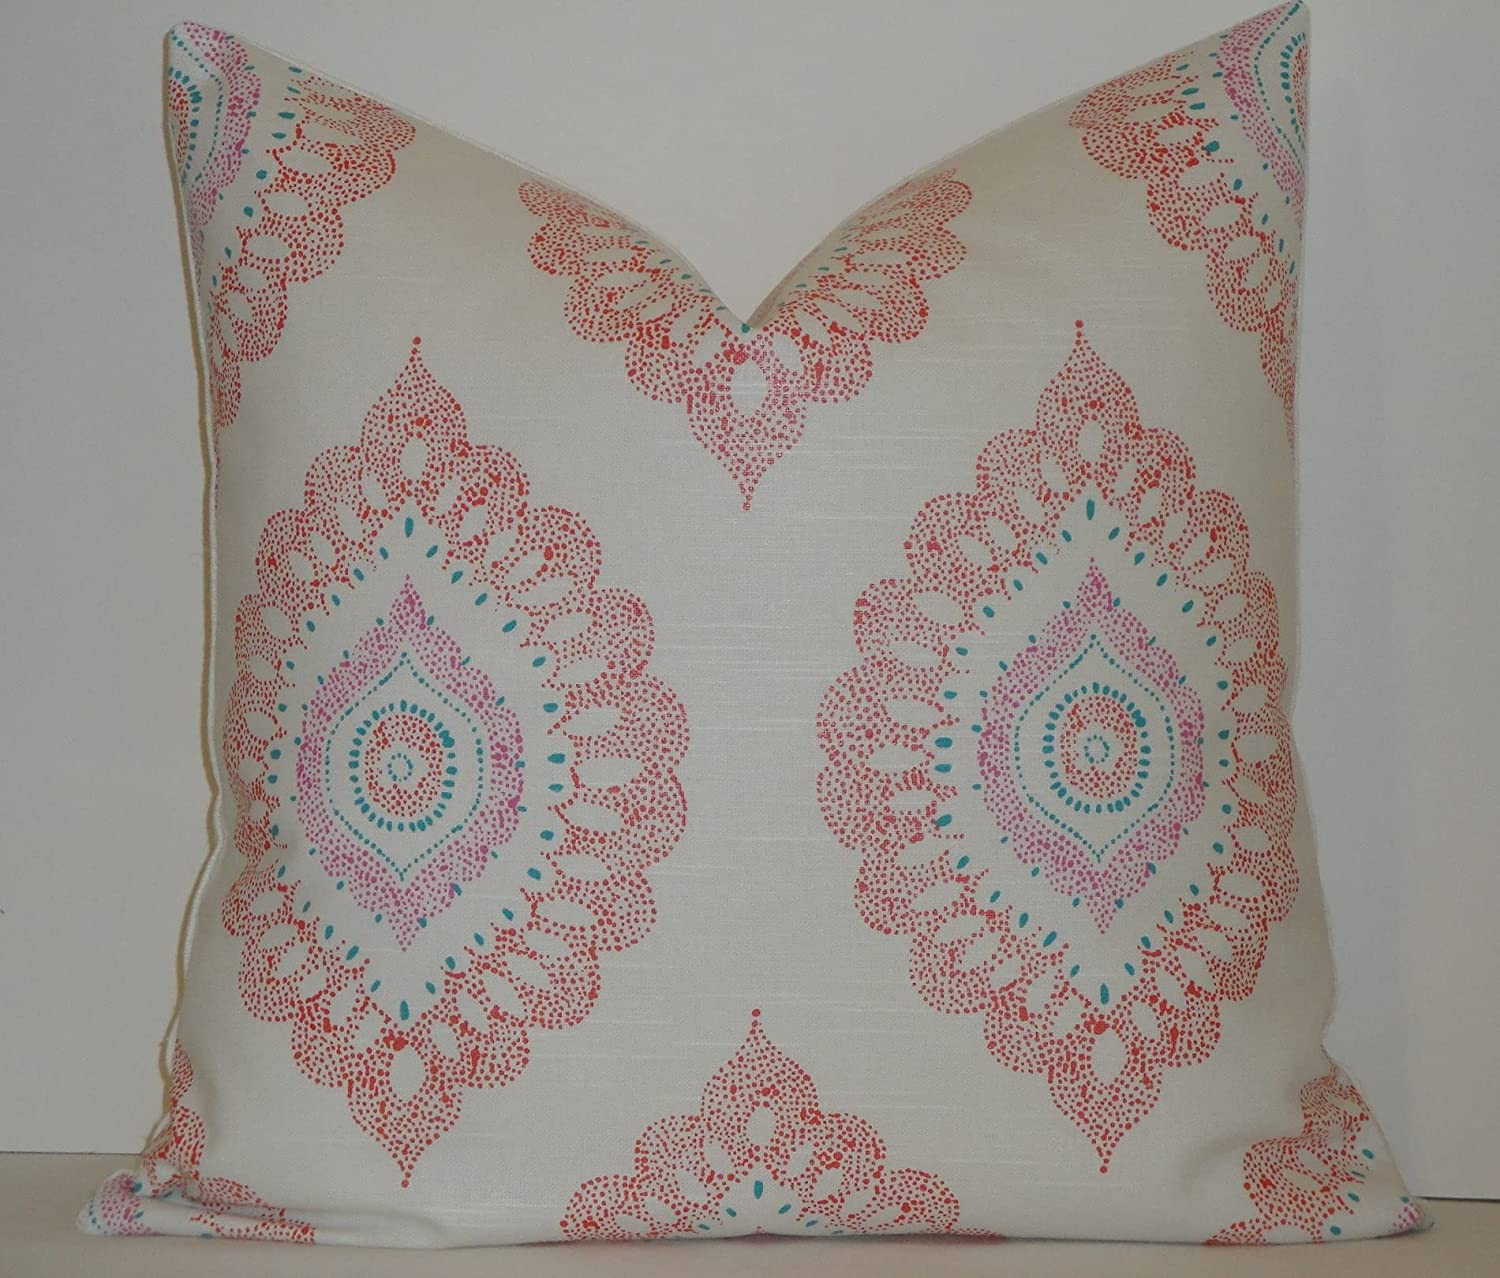 Medallion in Coral Orchid Turquoise Vintage Rustic Floral Throw Pillow Cover Geometric Farmhouse Decor Cushion Cover Pillow Case for Floor Party Decor Living Room Sofa Couch Gift for Her Pillowcase